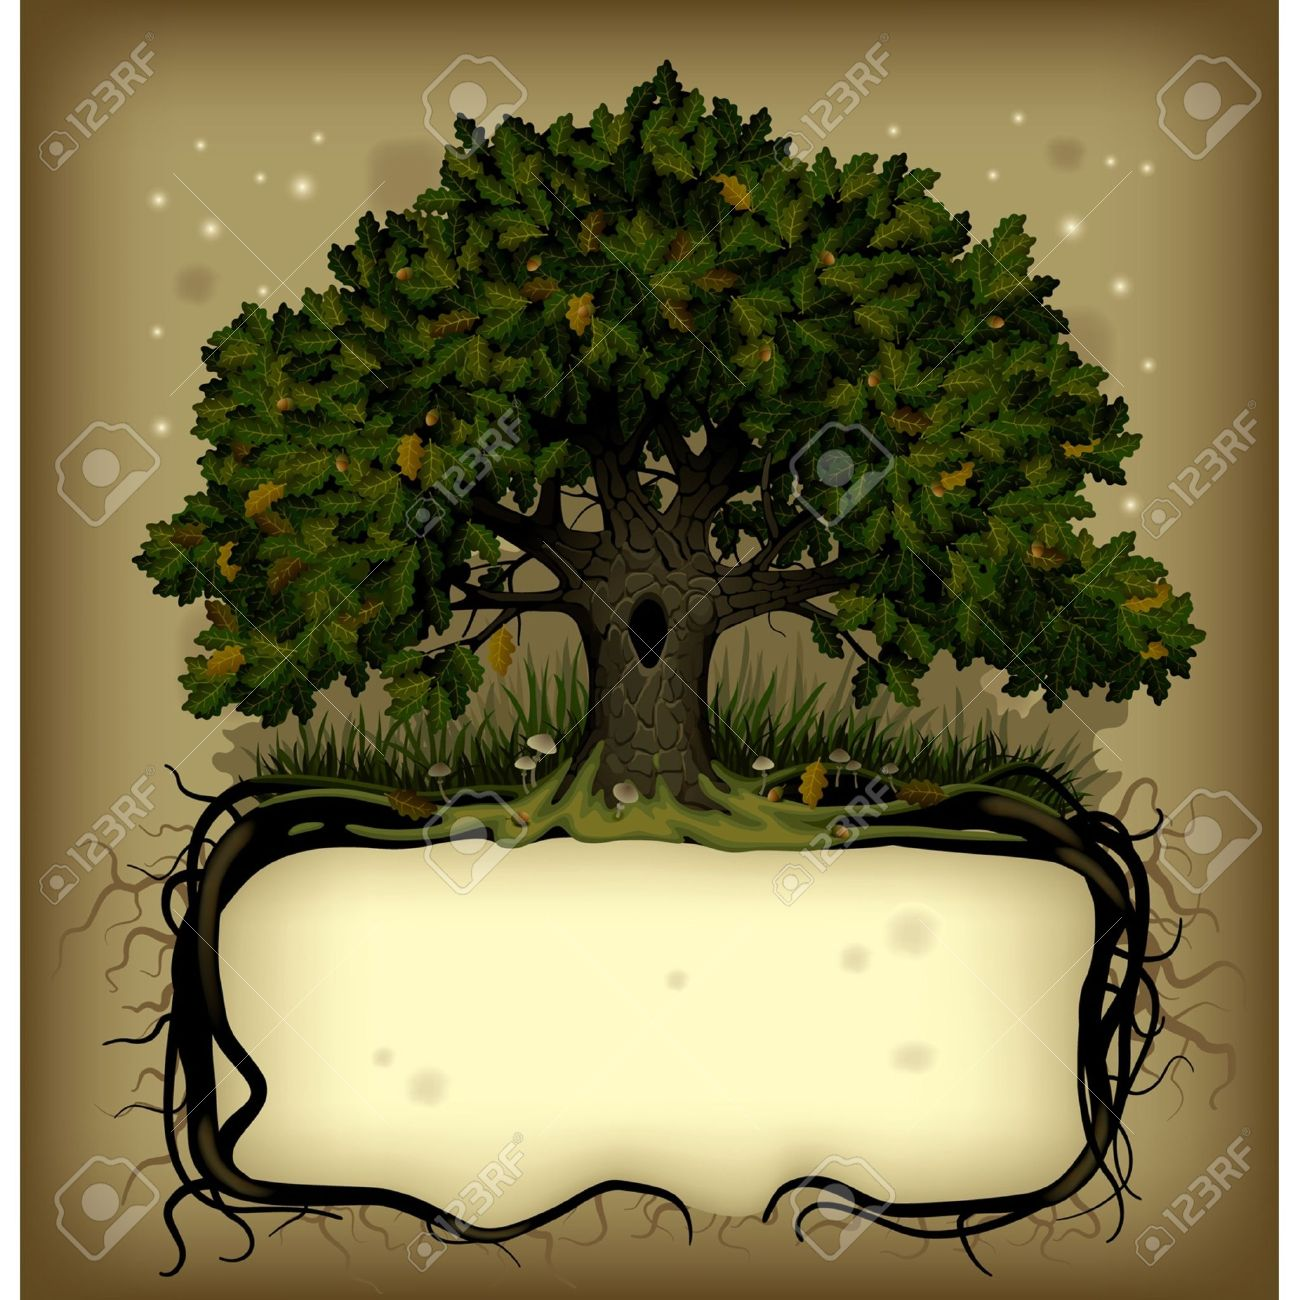 Vector old-fashioned banner with fairy-tale rooted oak tree Stock Vector - 16392548